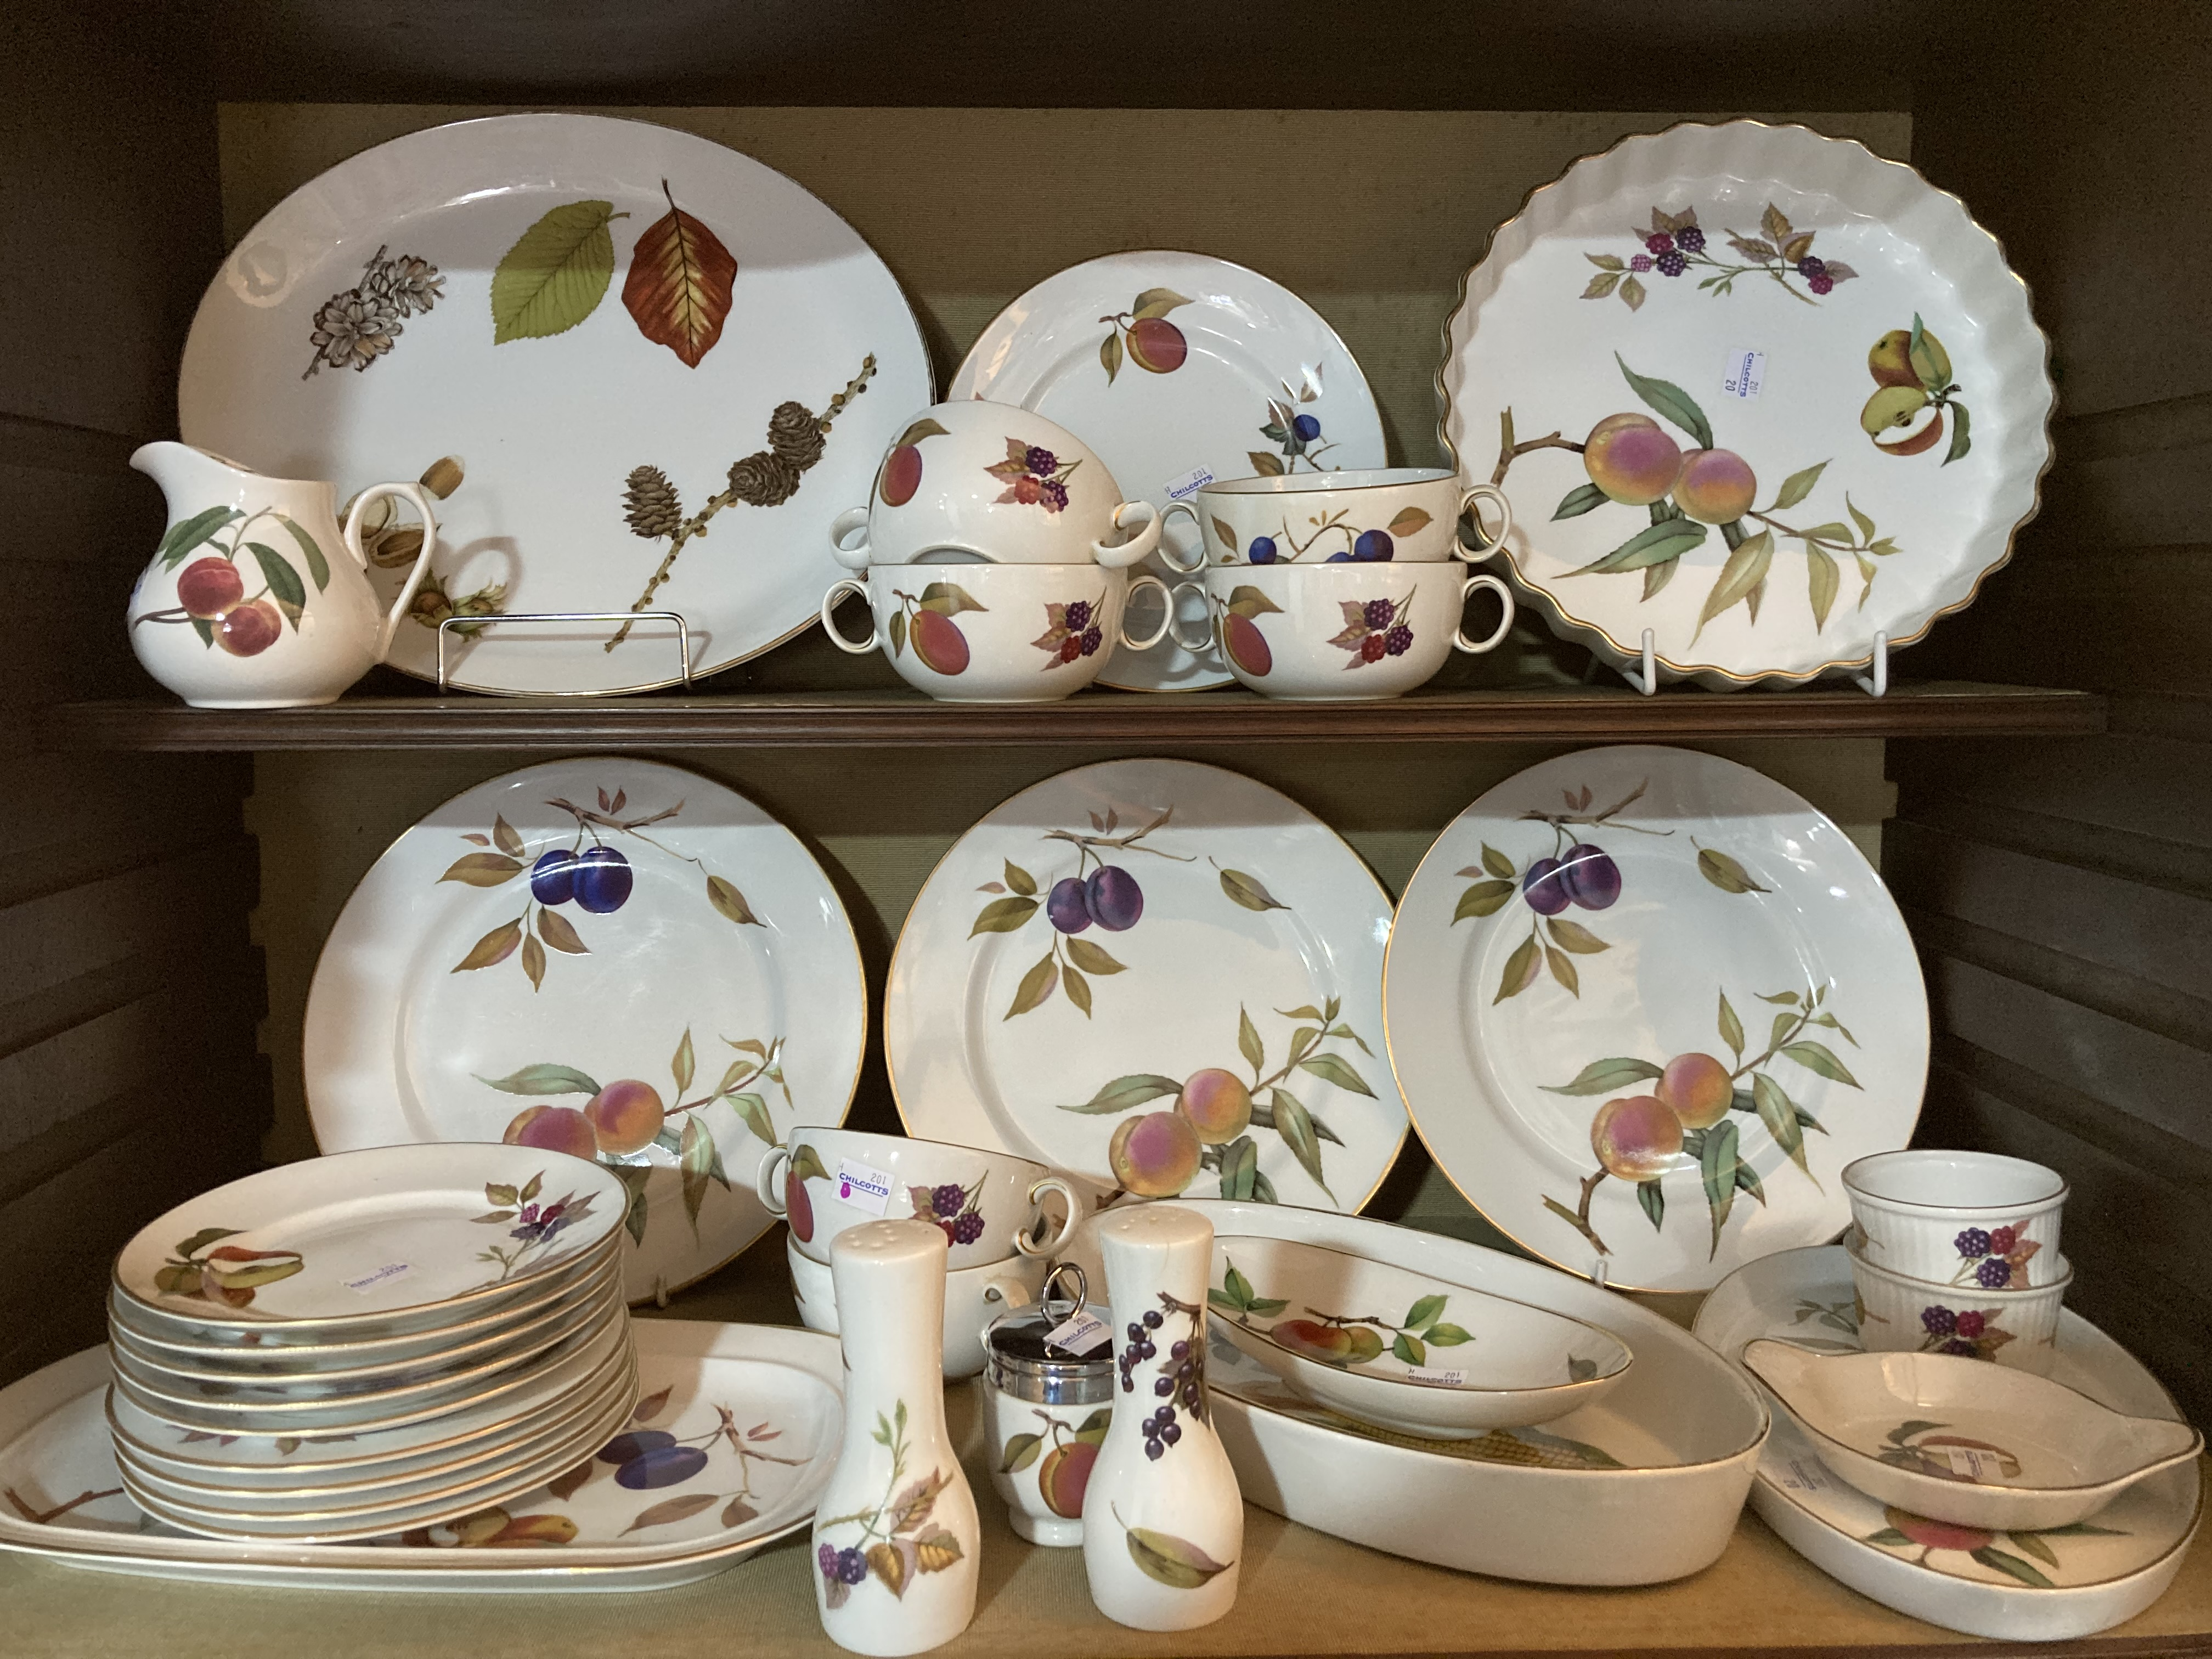 An extensive Royal Worcester 'Evesham' pattern Dinner and Tea Service, to include, tureens, gravy